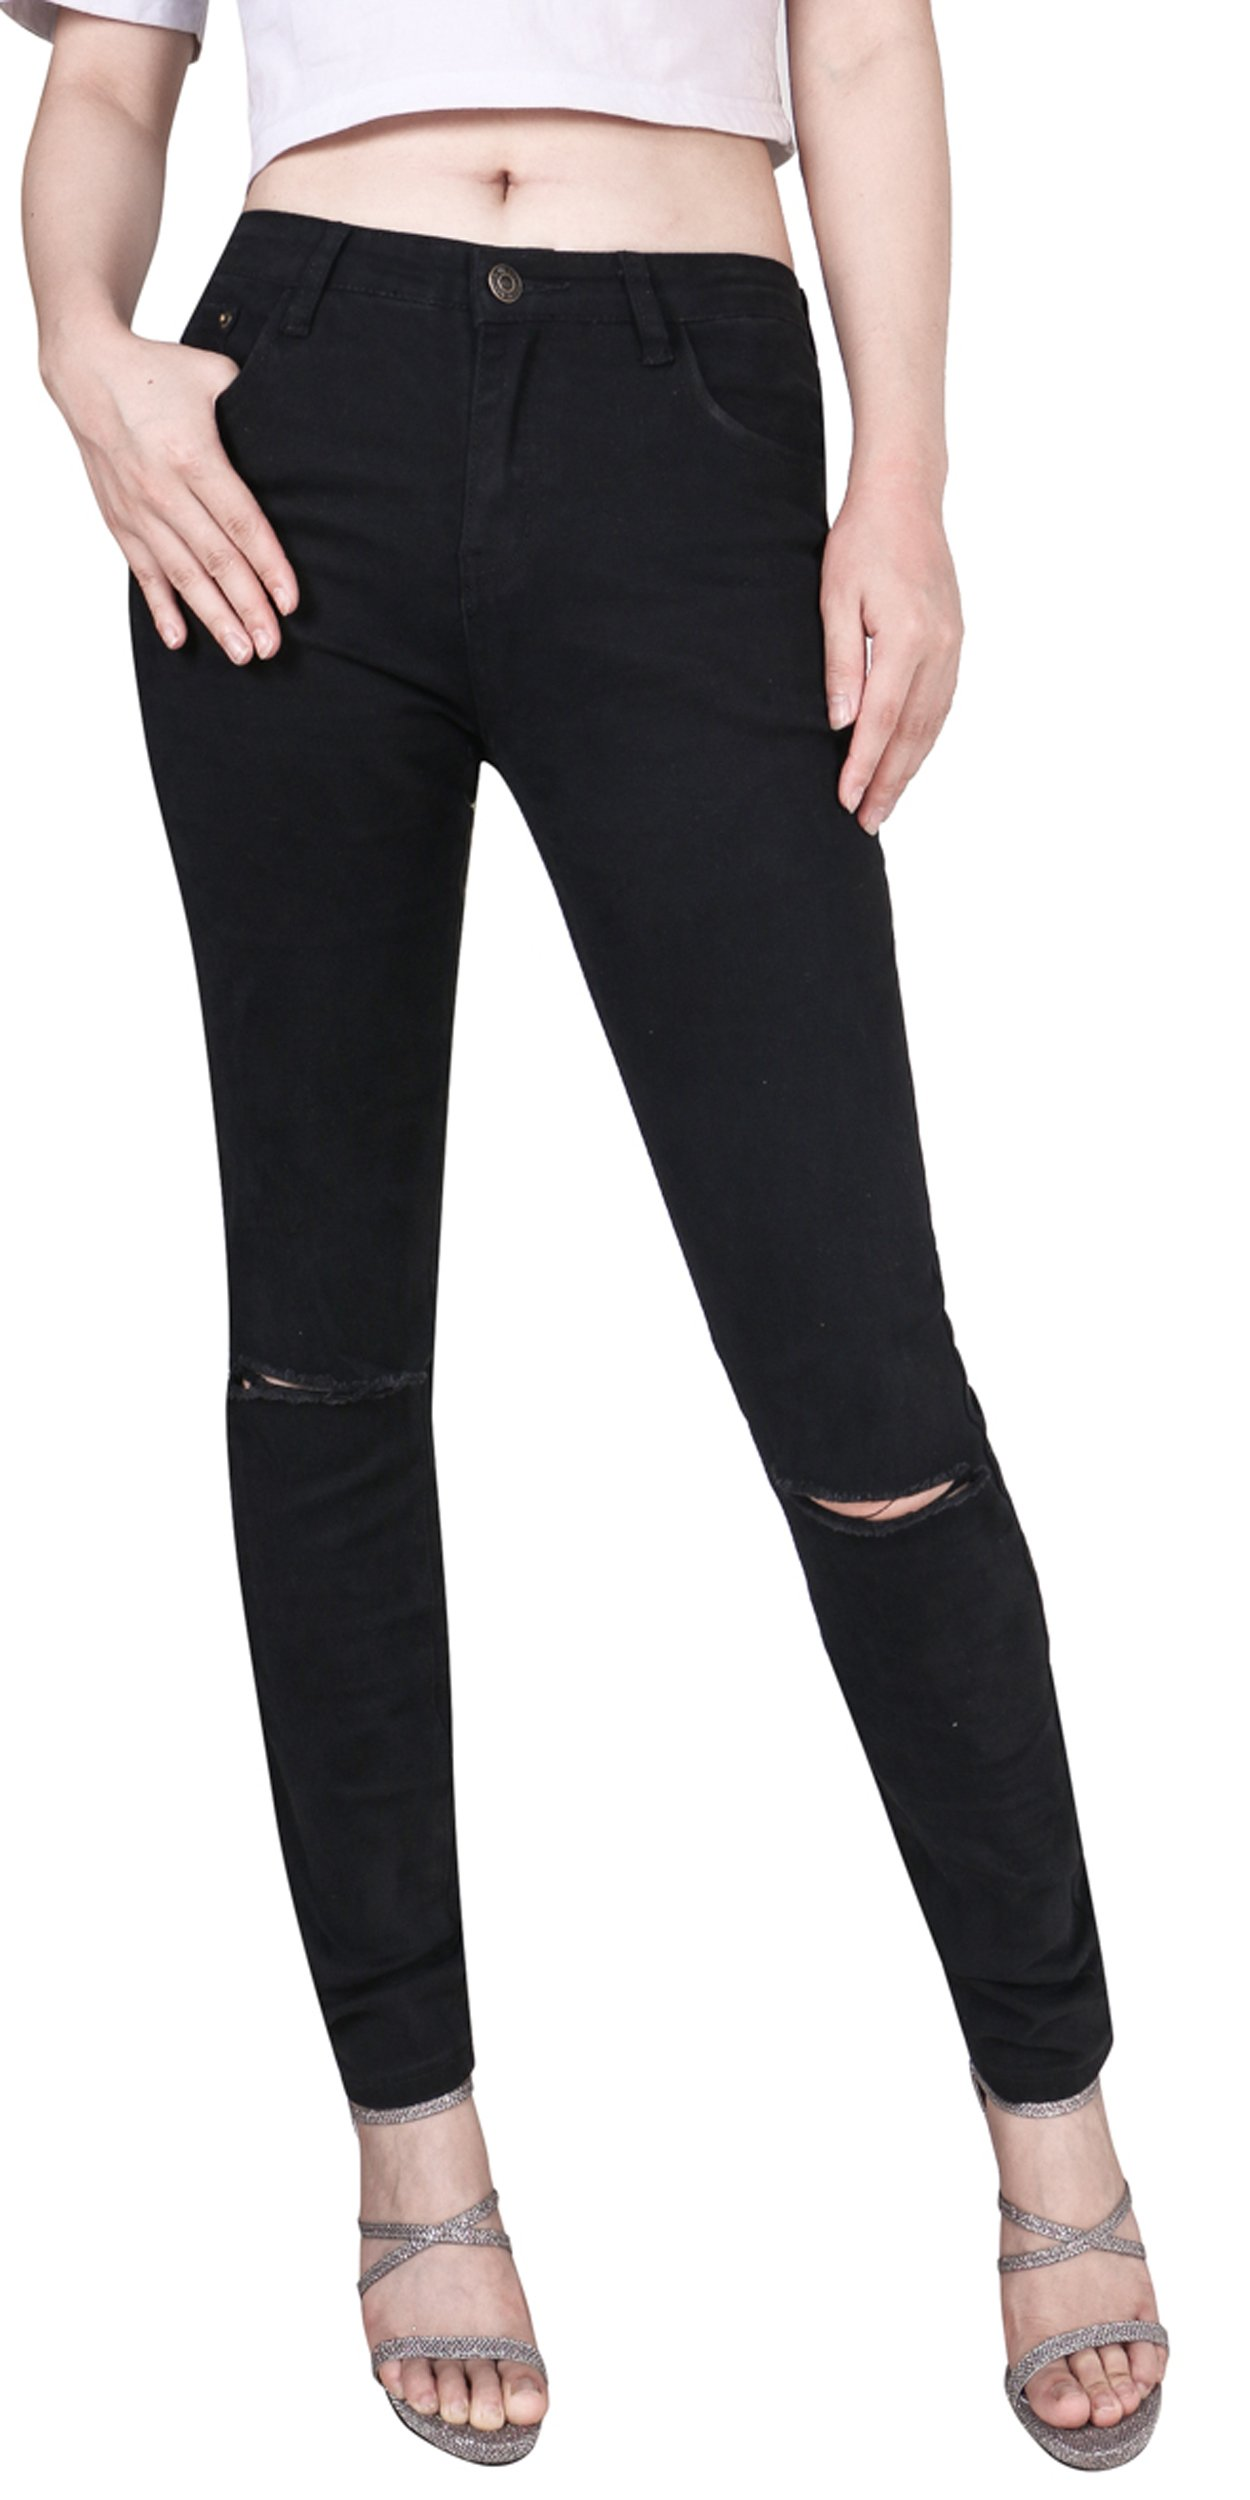 Women's Casual Ripped Holes Skinny Jeans Jeggings Straight Fit Denim Pants (US 0, Black 2)